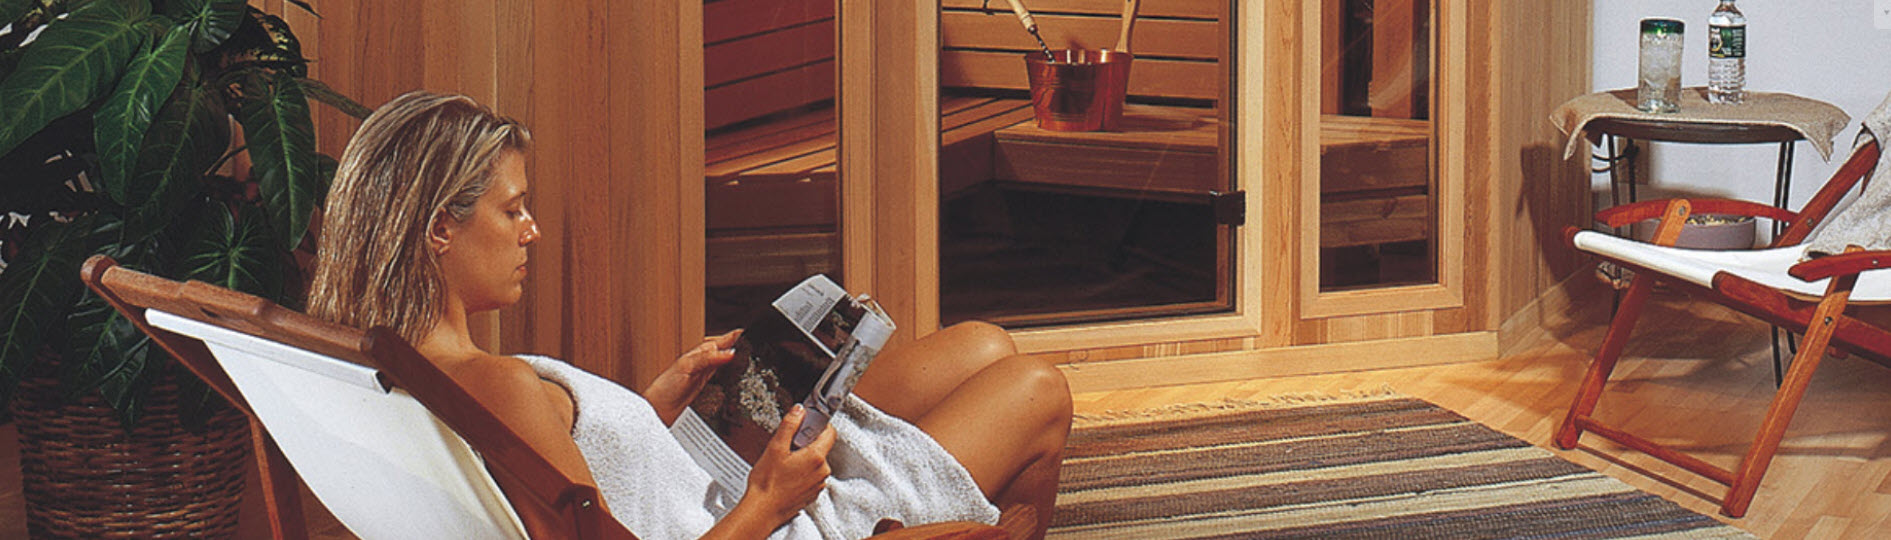 Rejuvenate Your Skin in an  Arnolds Park Outdoor Infrared Sauna